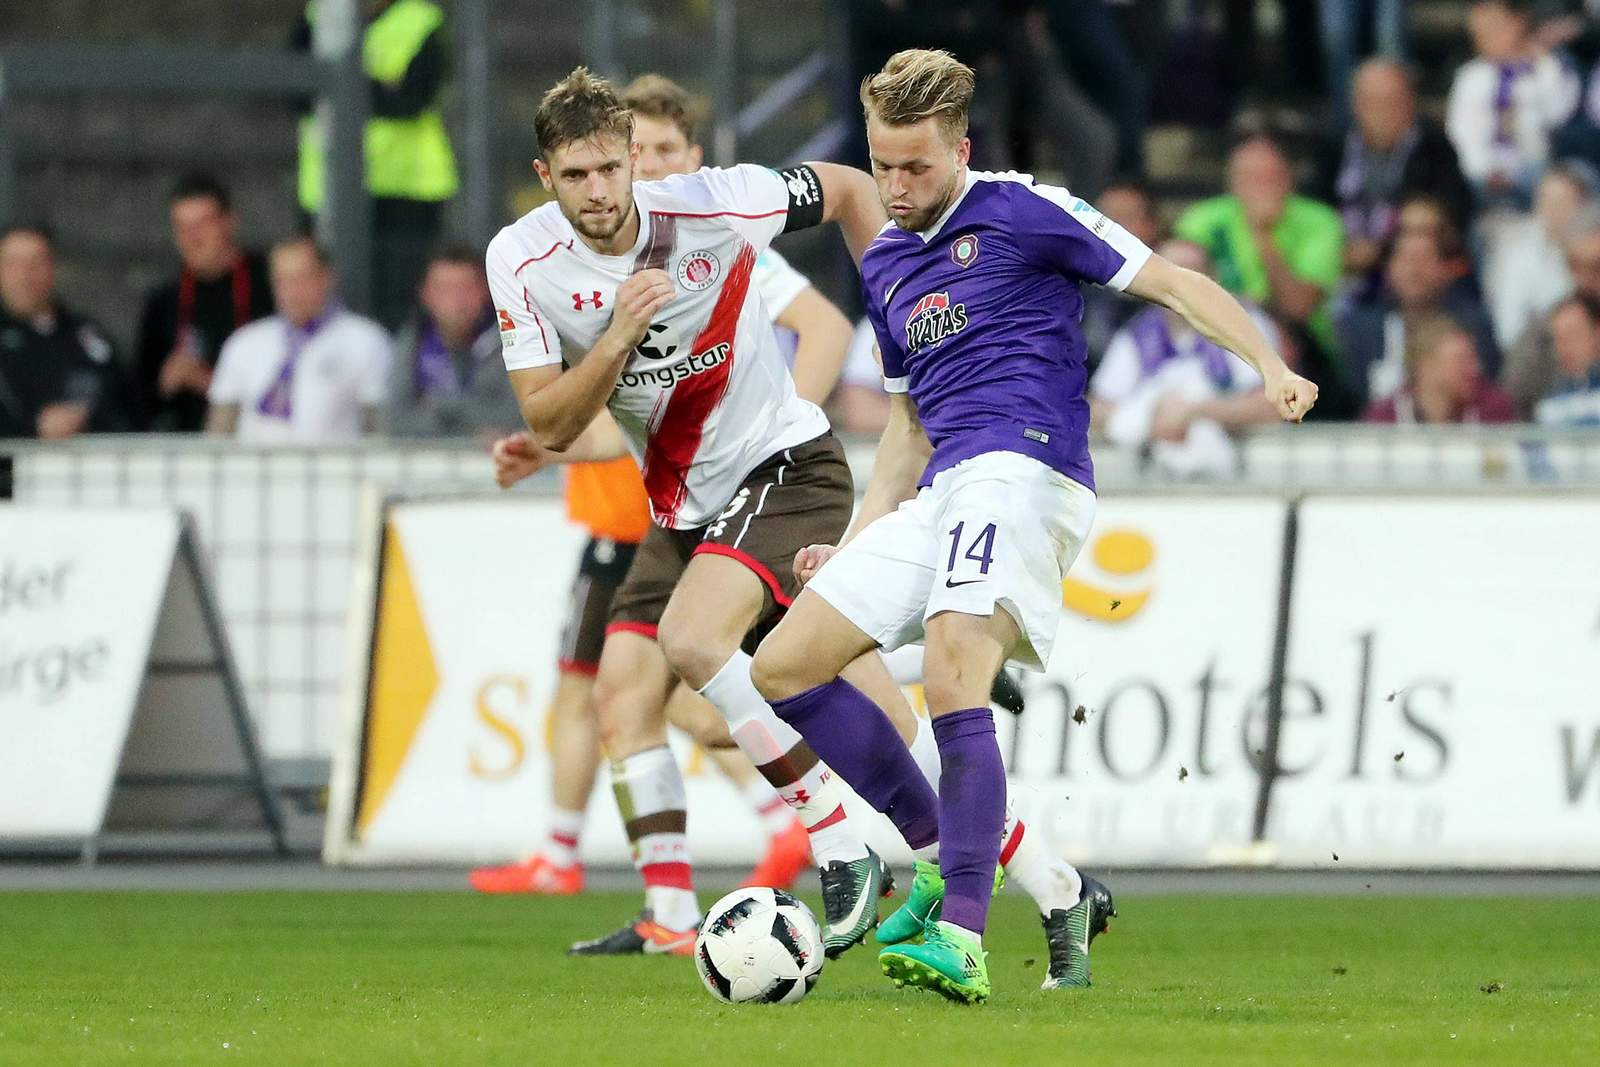 Aue vs St. Pauli Free Betting Tips